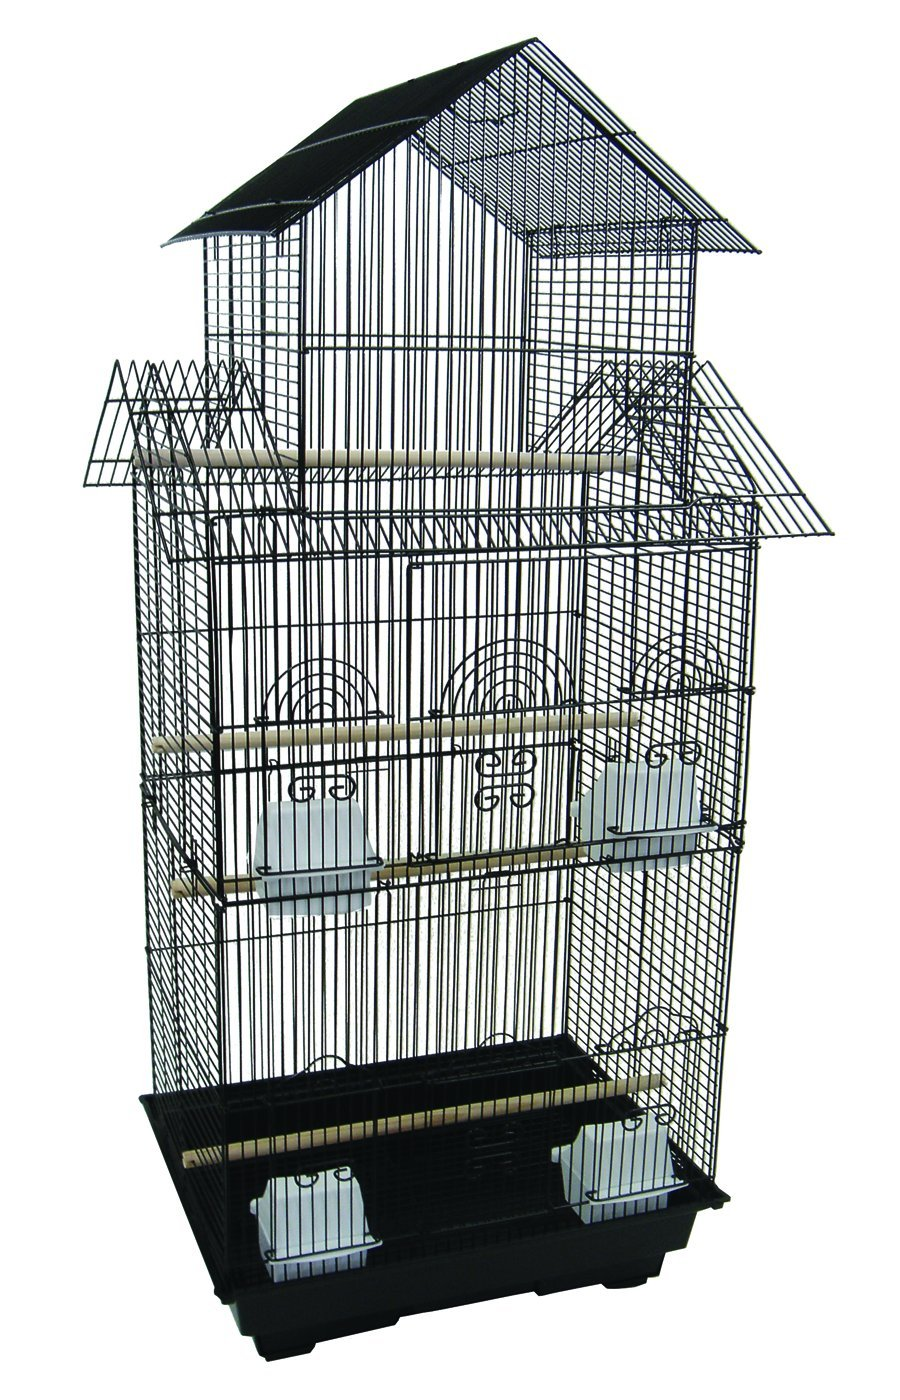 Yml 6844 3/8-Inch Bar Spacing Tall Pagoda Top Bird Cage with Stand-18-Inch X14-Inch in White 6844_4814WHT